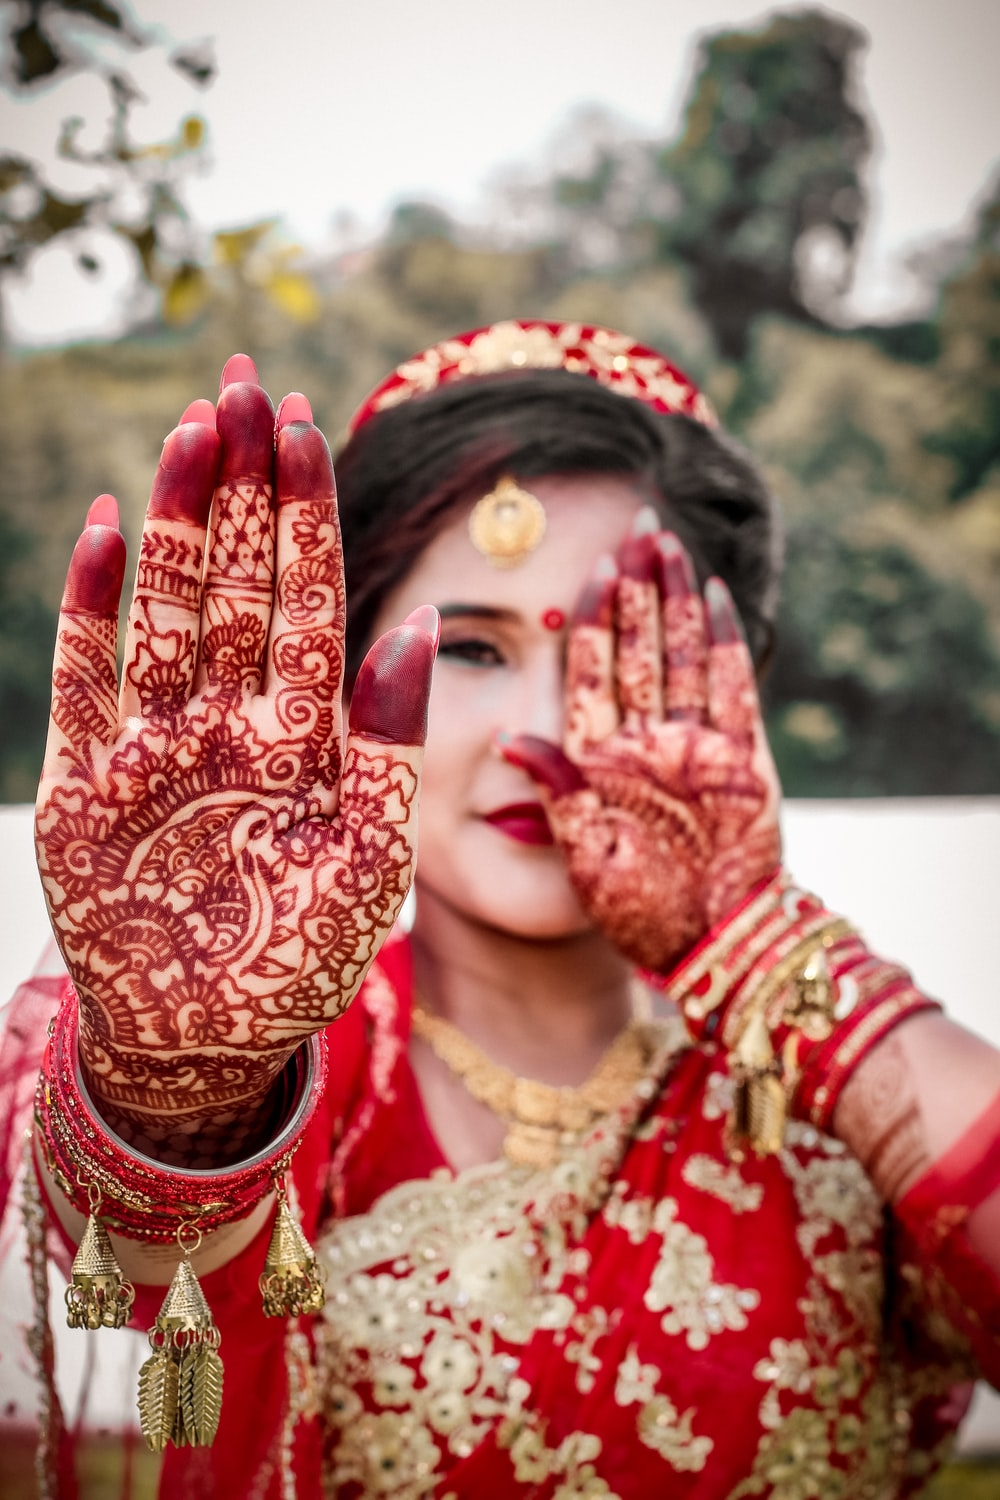 500 Indian Bride Pictures Download Free Images On Unsplash